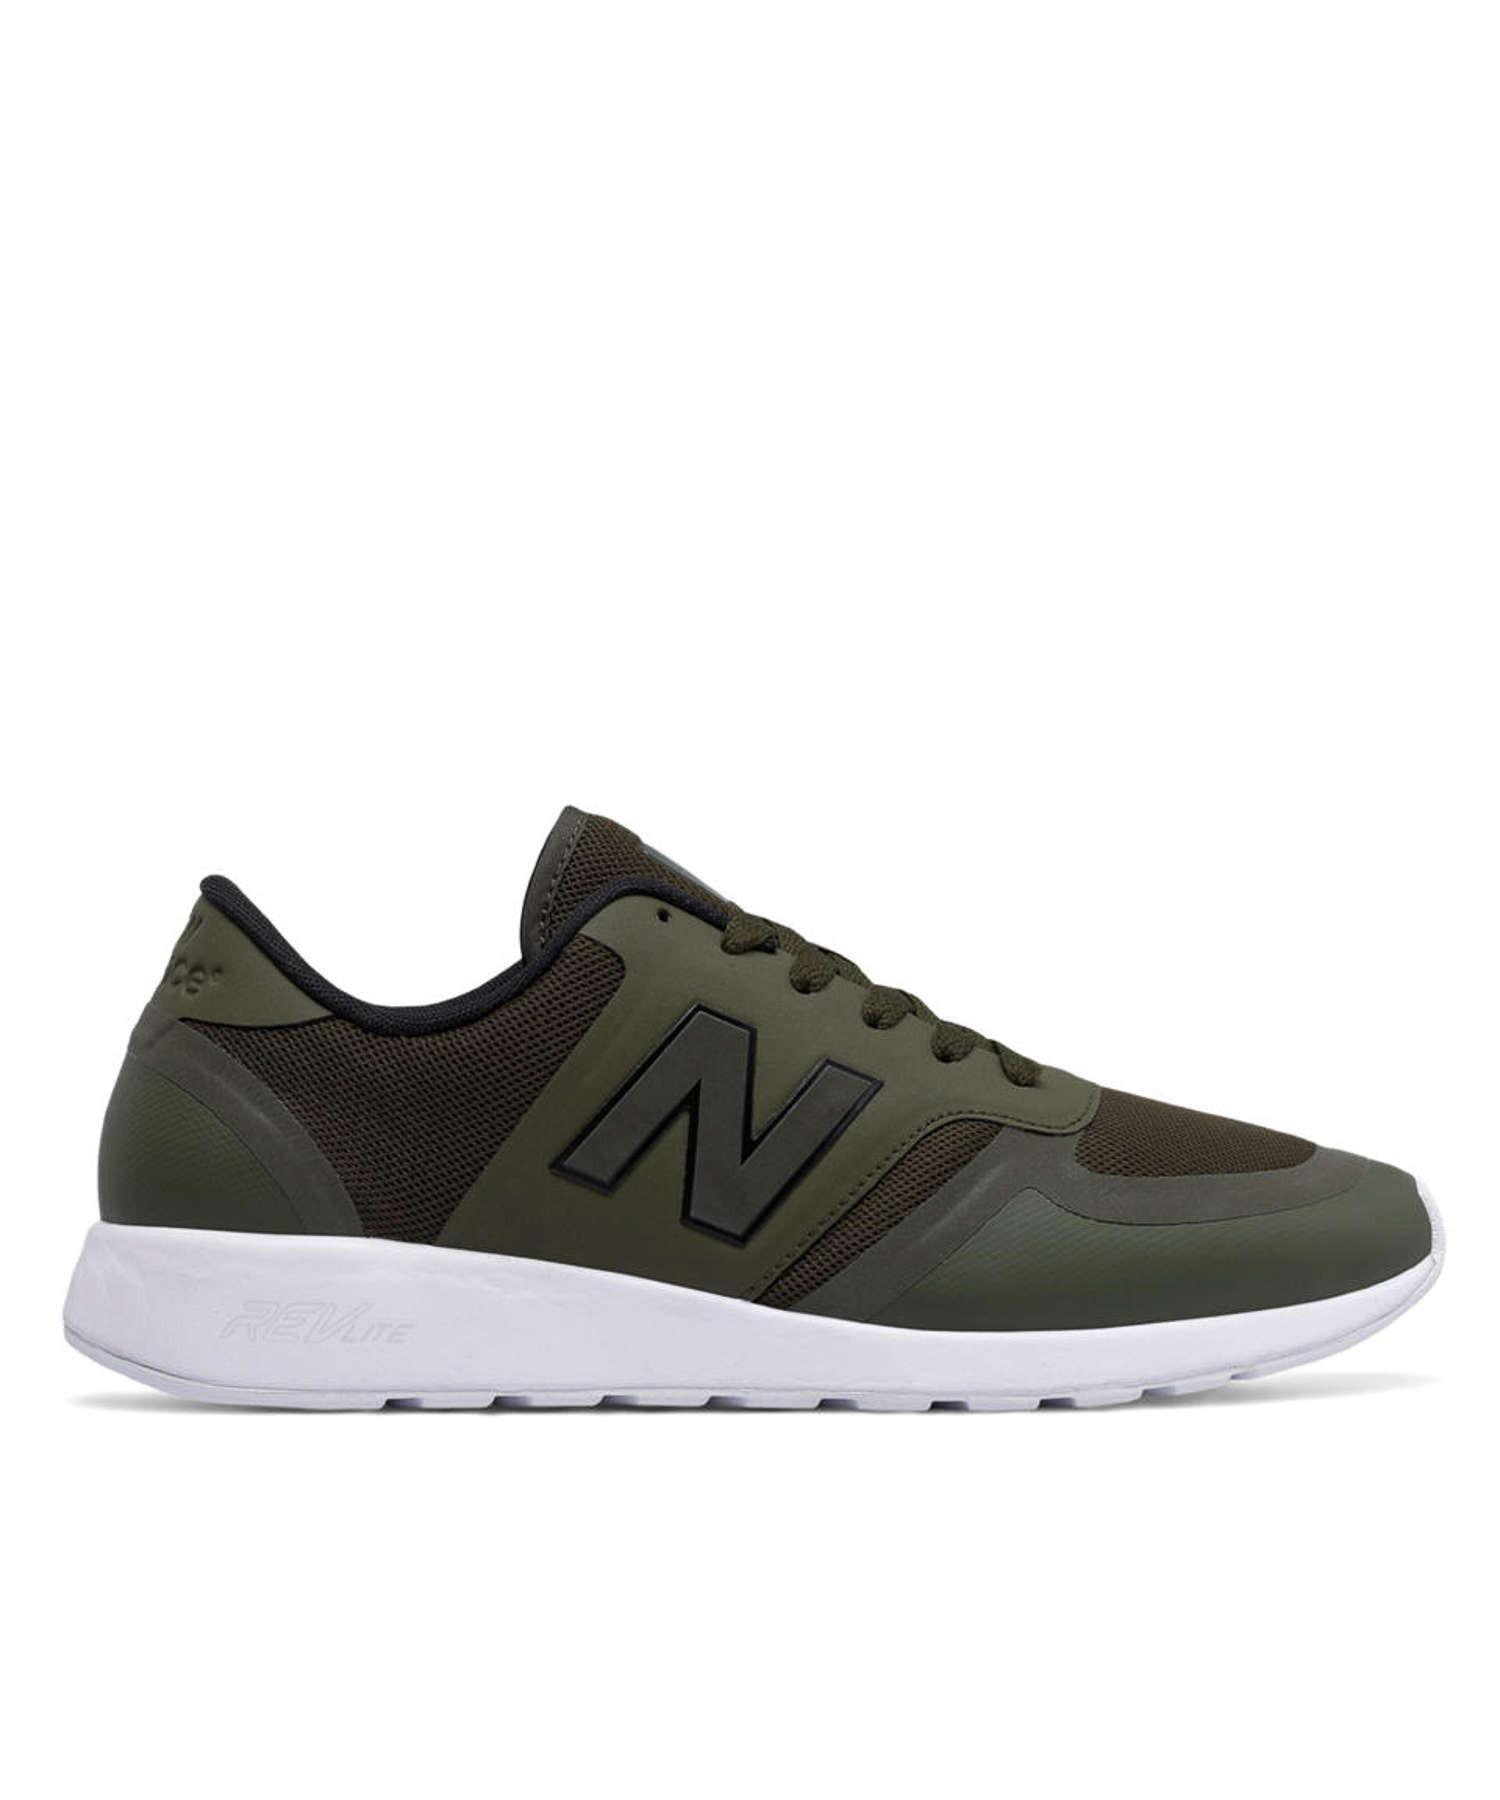 italy new balance 420 reflective re engineerot bd468 cede8